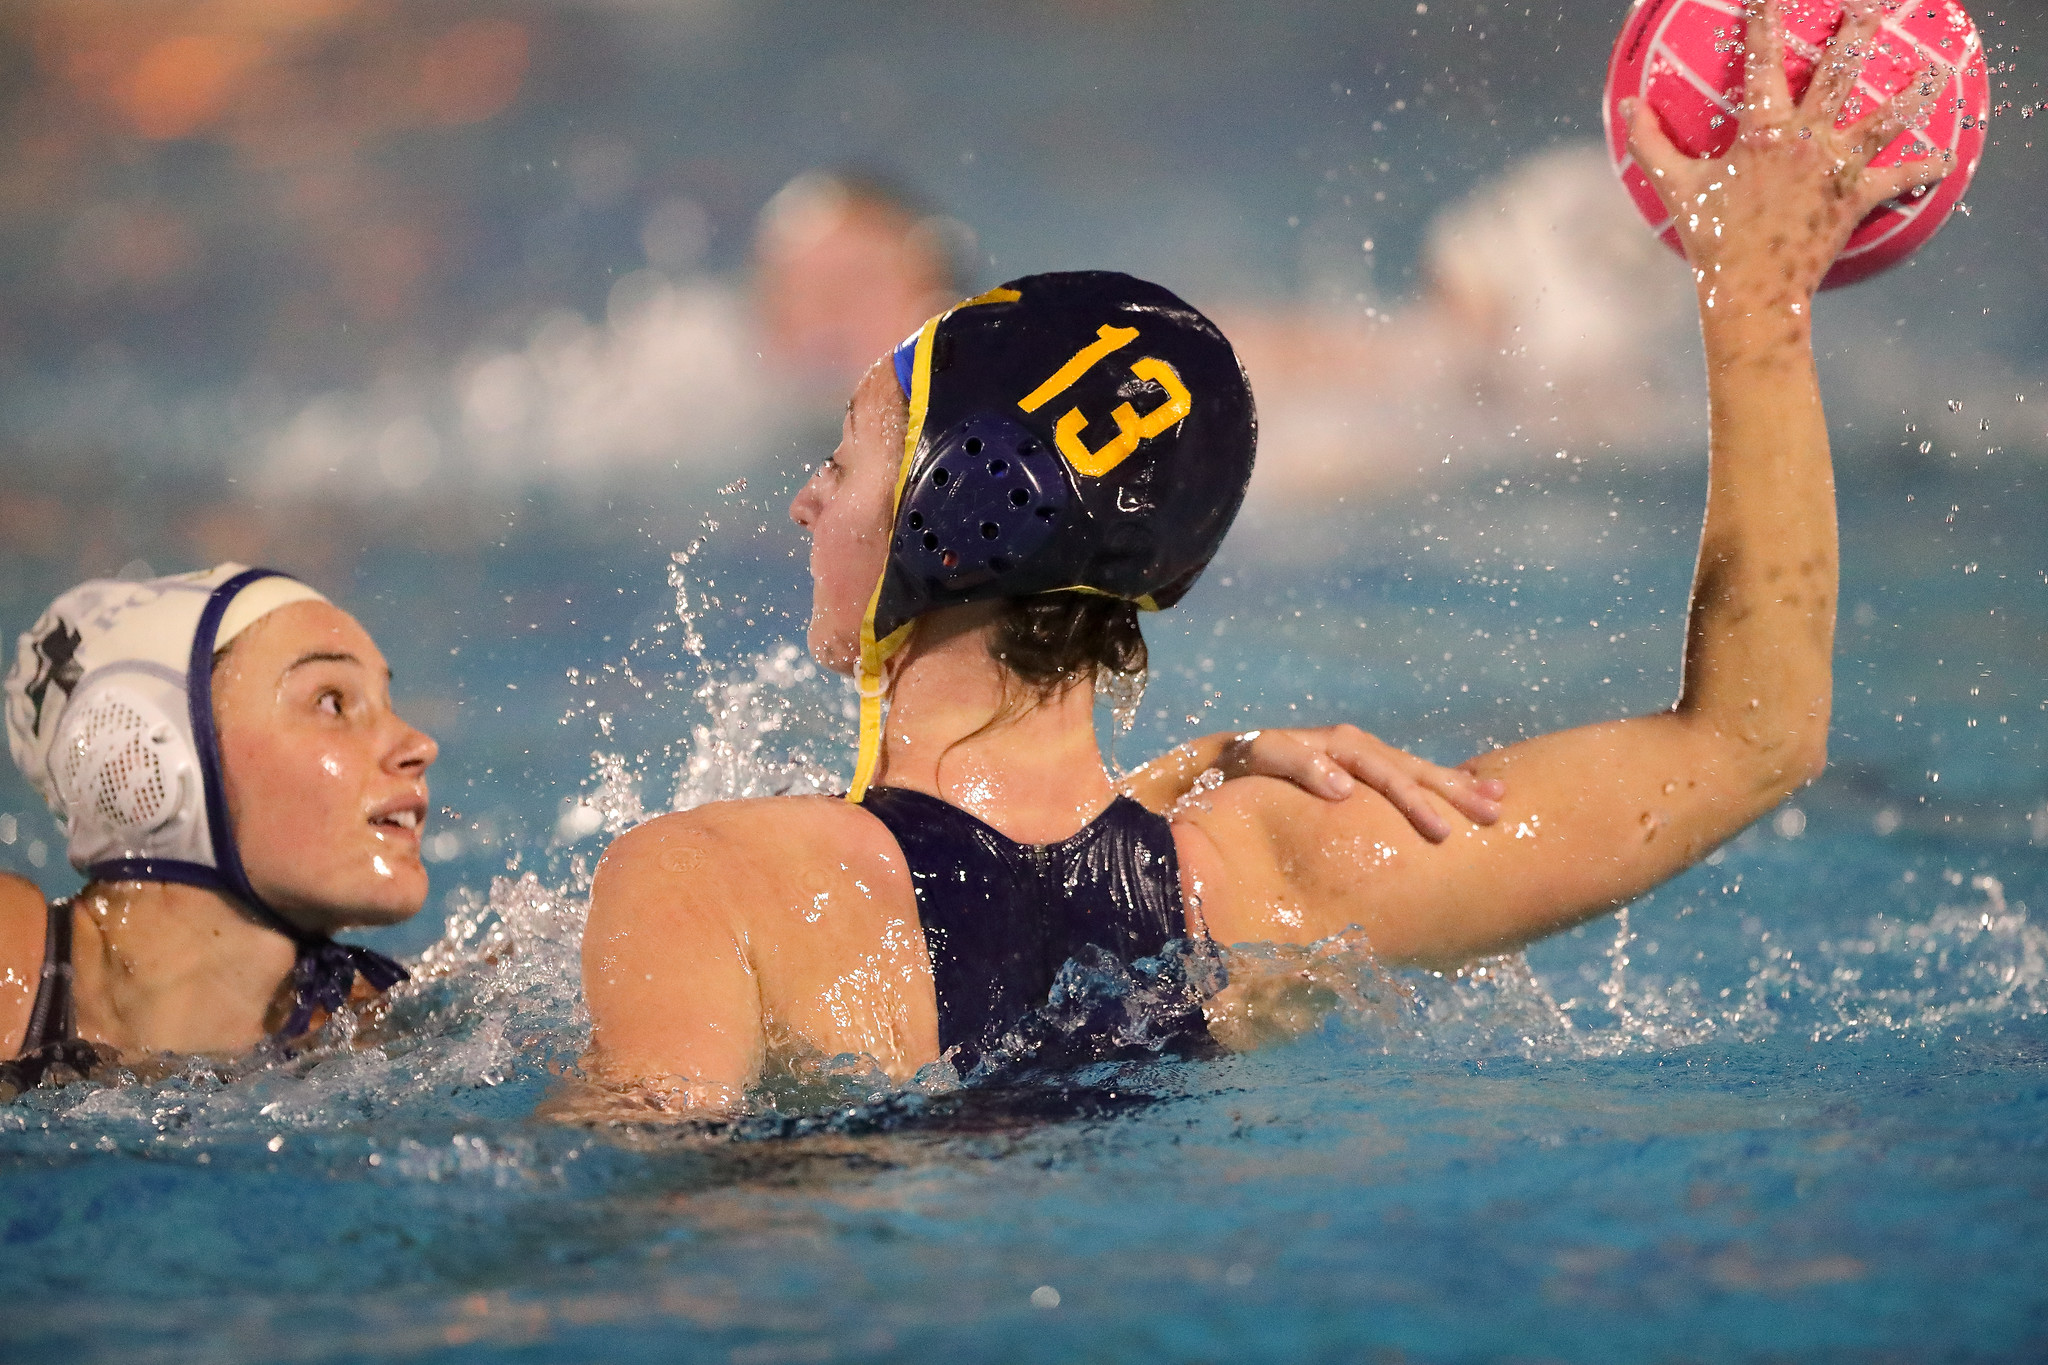 031618_UMCWP_at_Foothill_132-X4.jpg